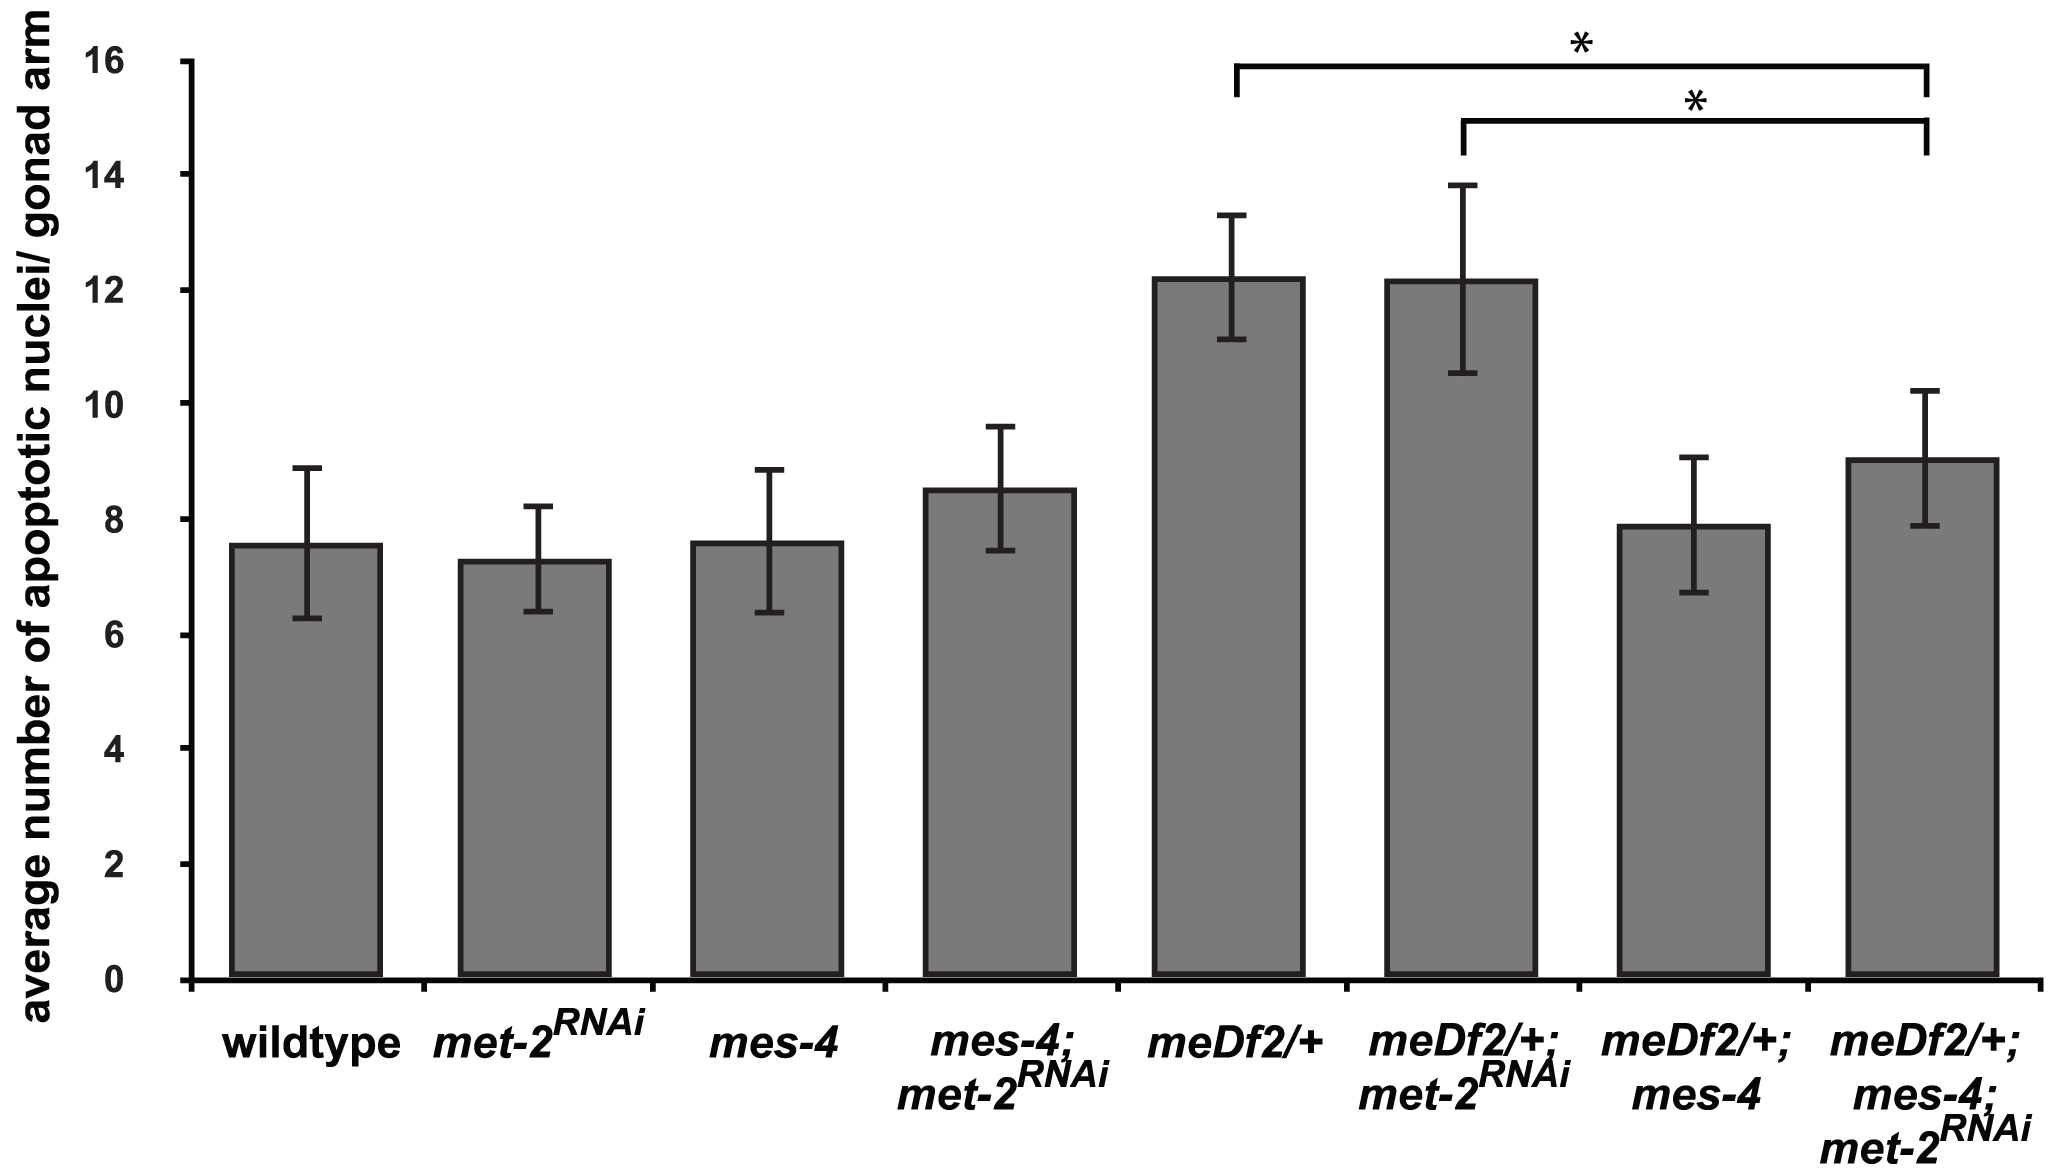 <i>mes-4</i>'s role in the synapsis checkpoint is independent of <i>met-2</i> mediated heterochromatin assembly on unsynapsed X chromosomes.